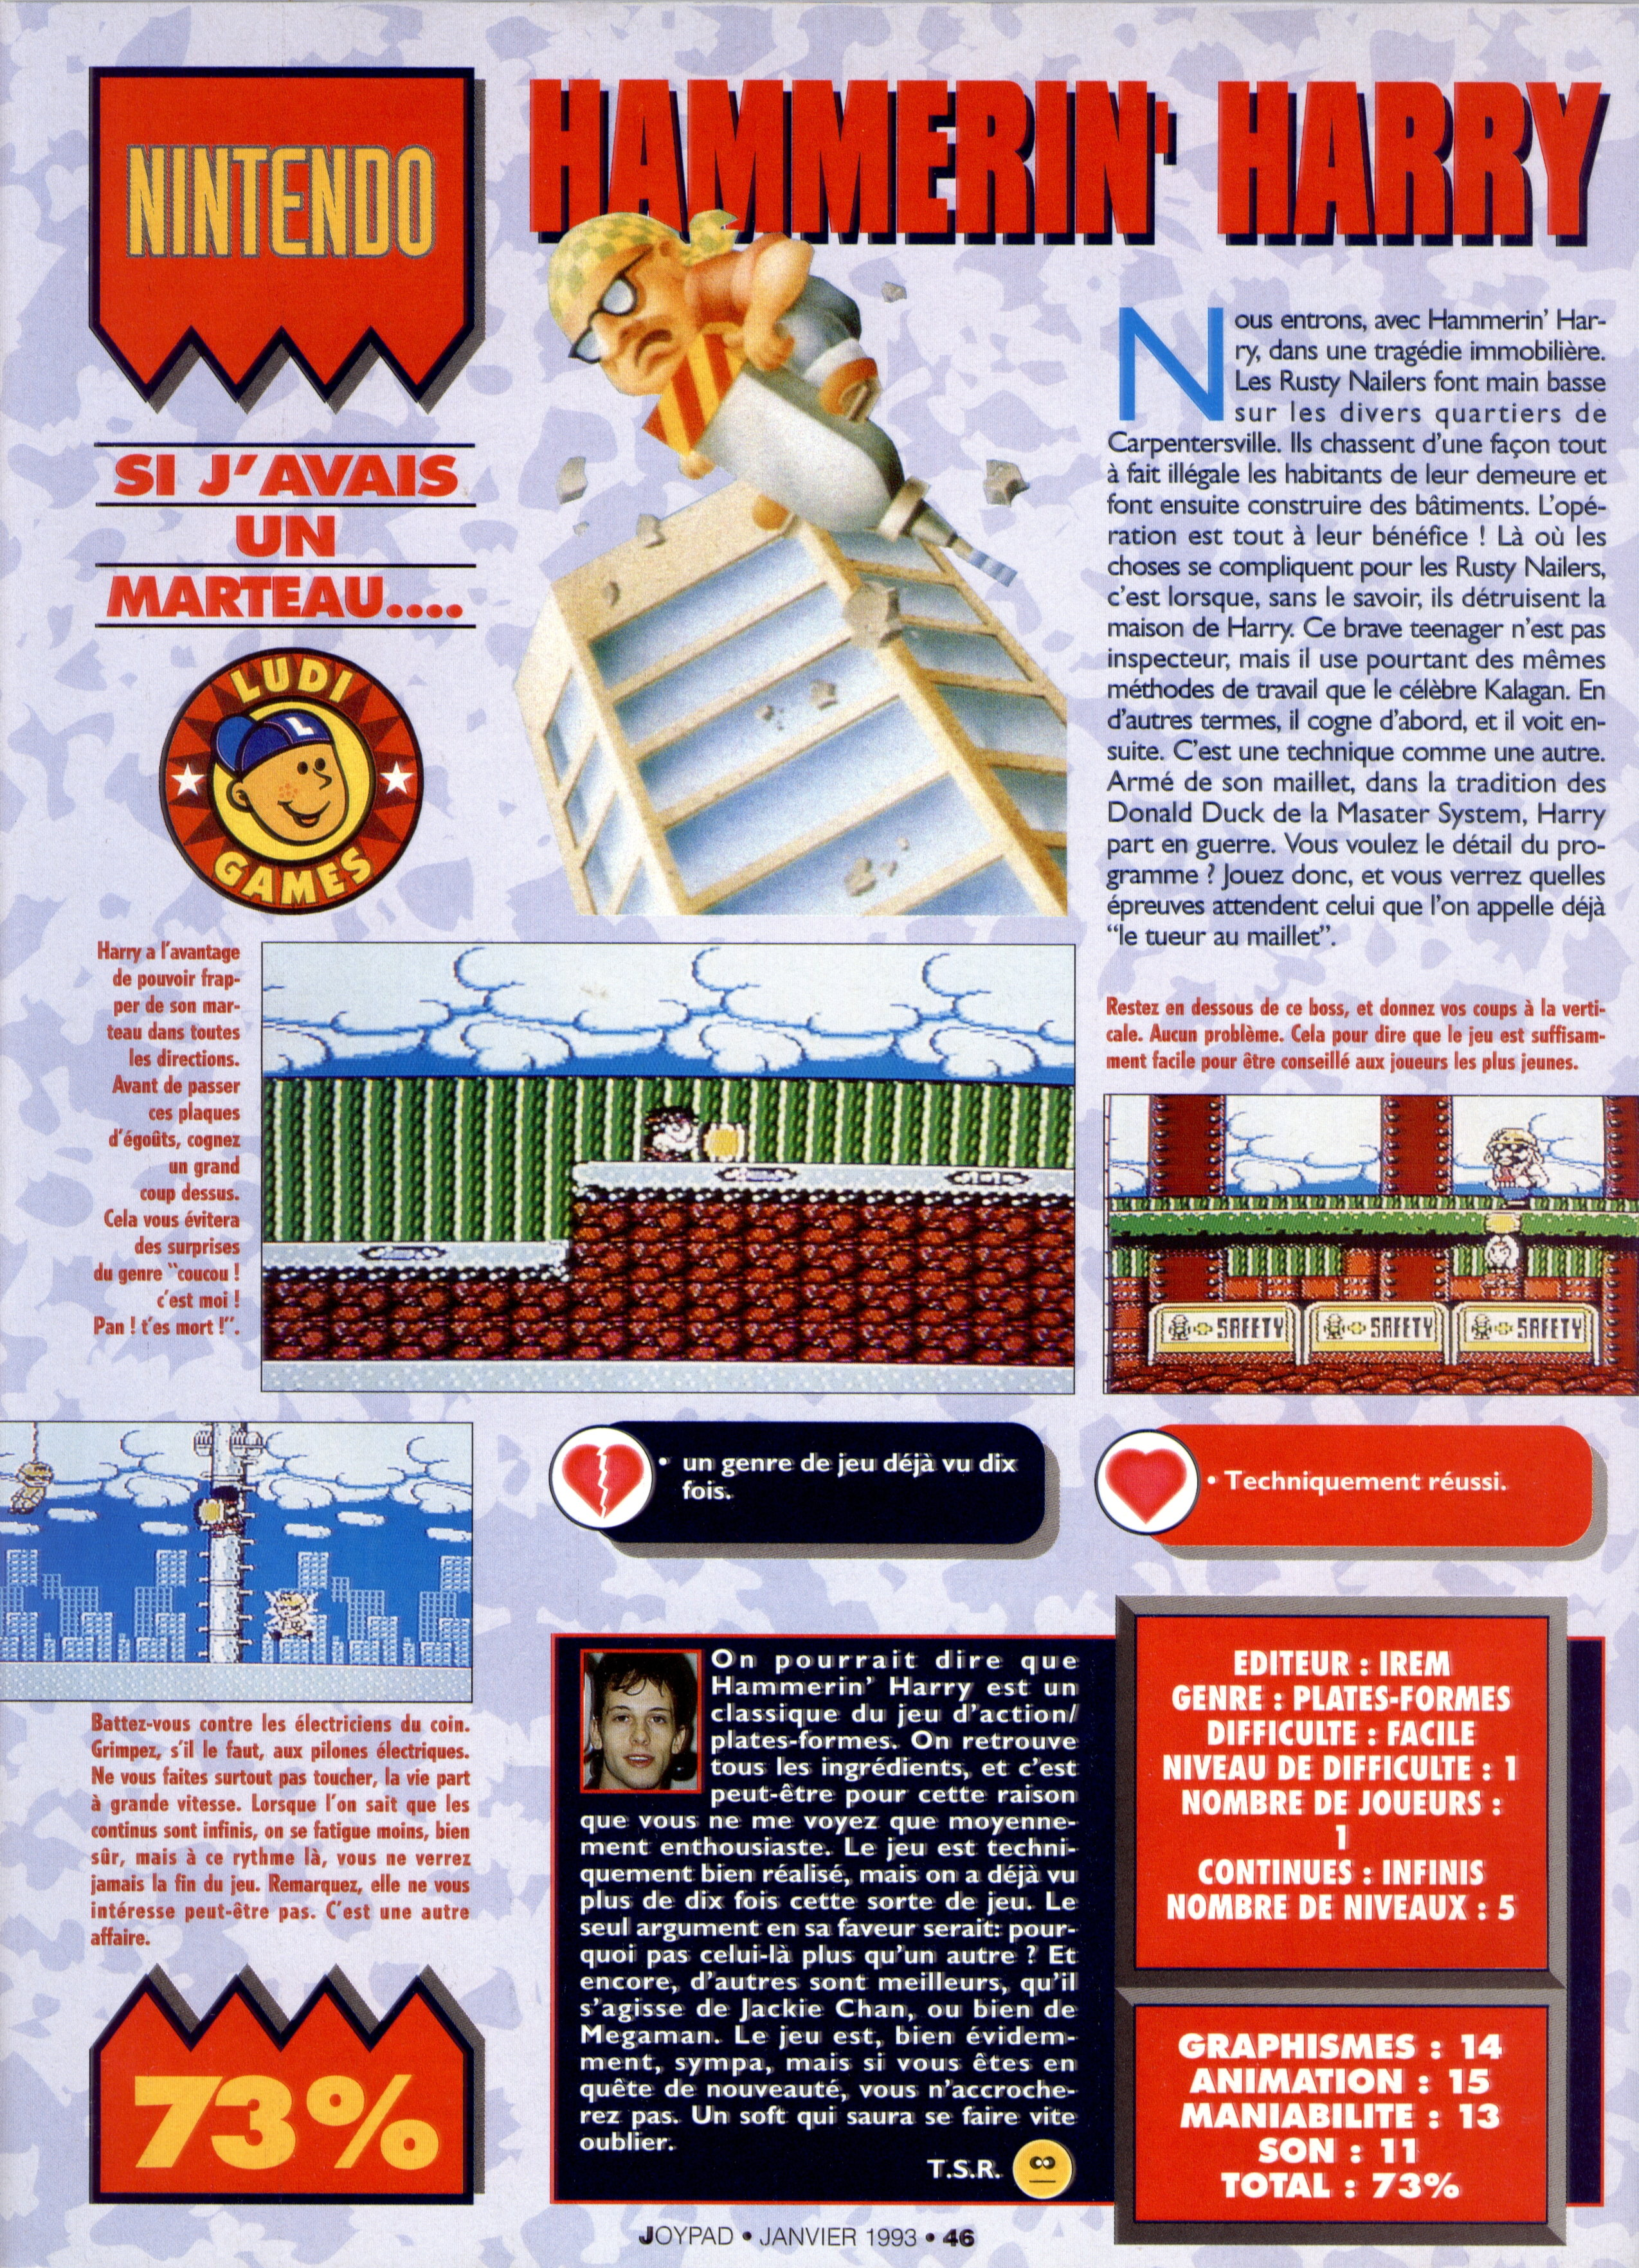 Action pur 1993 - 4 5